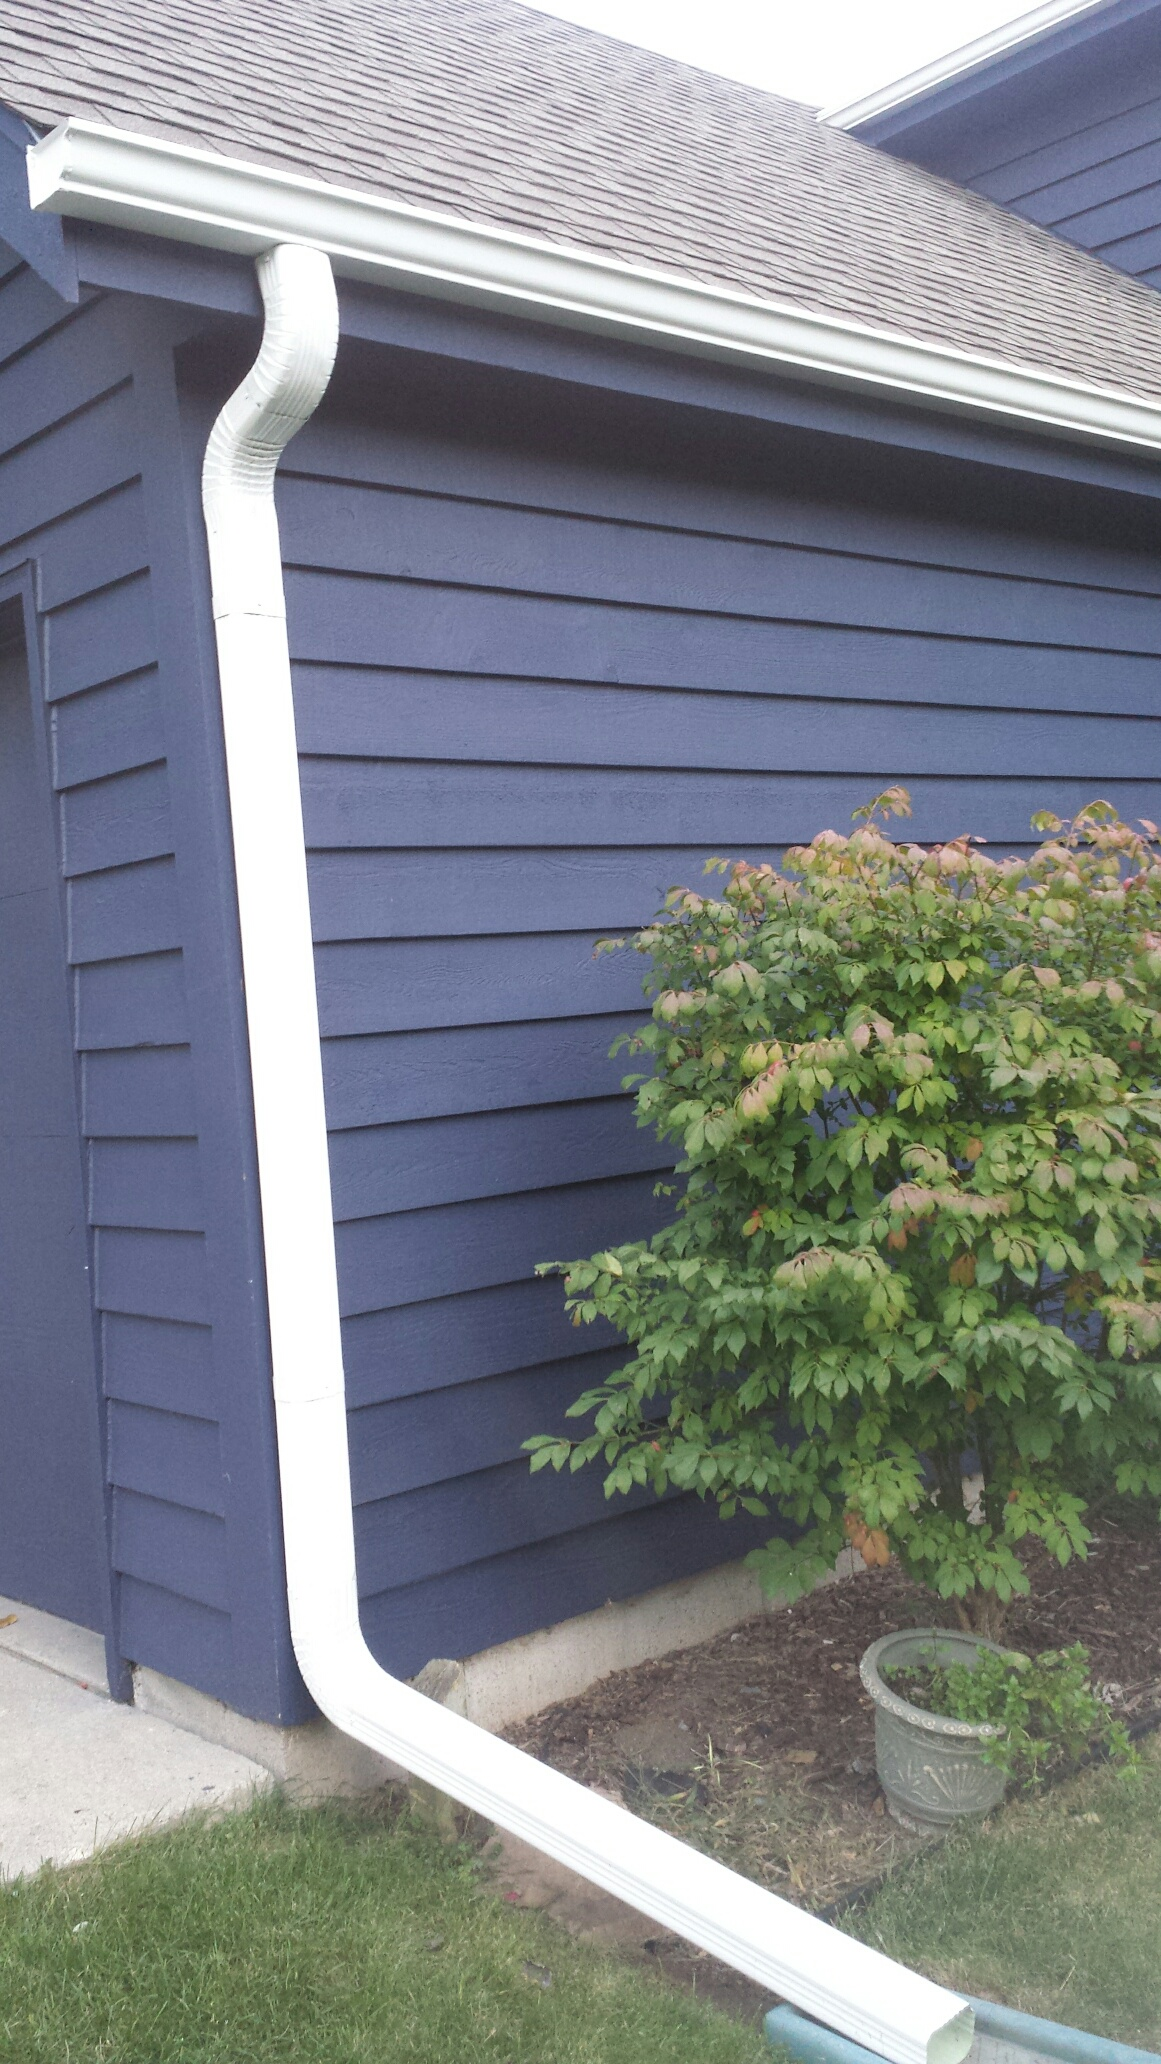 Gutters Quality Design Home Improvements Offers Free